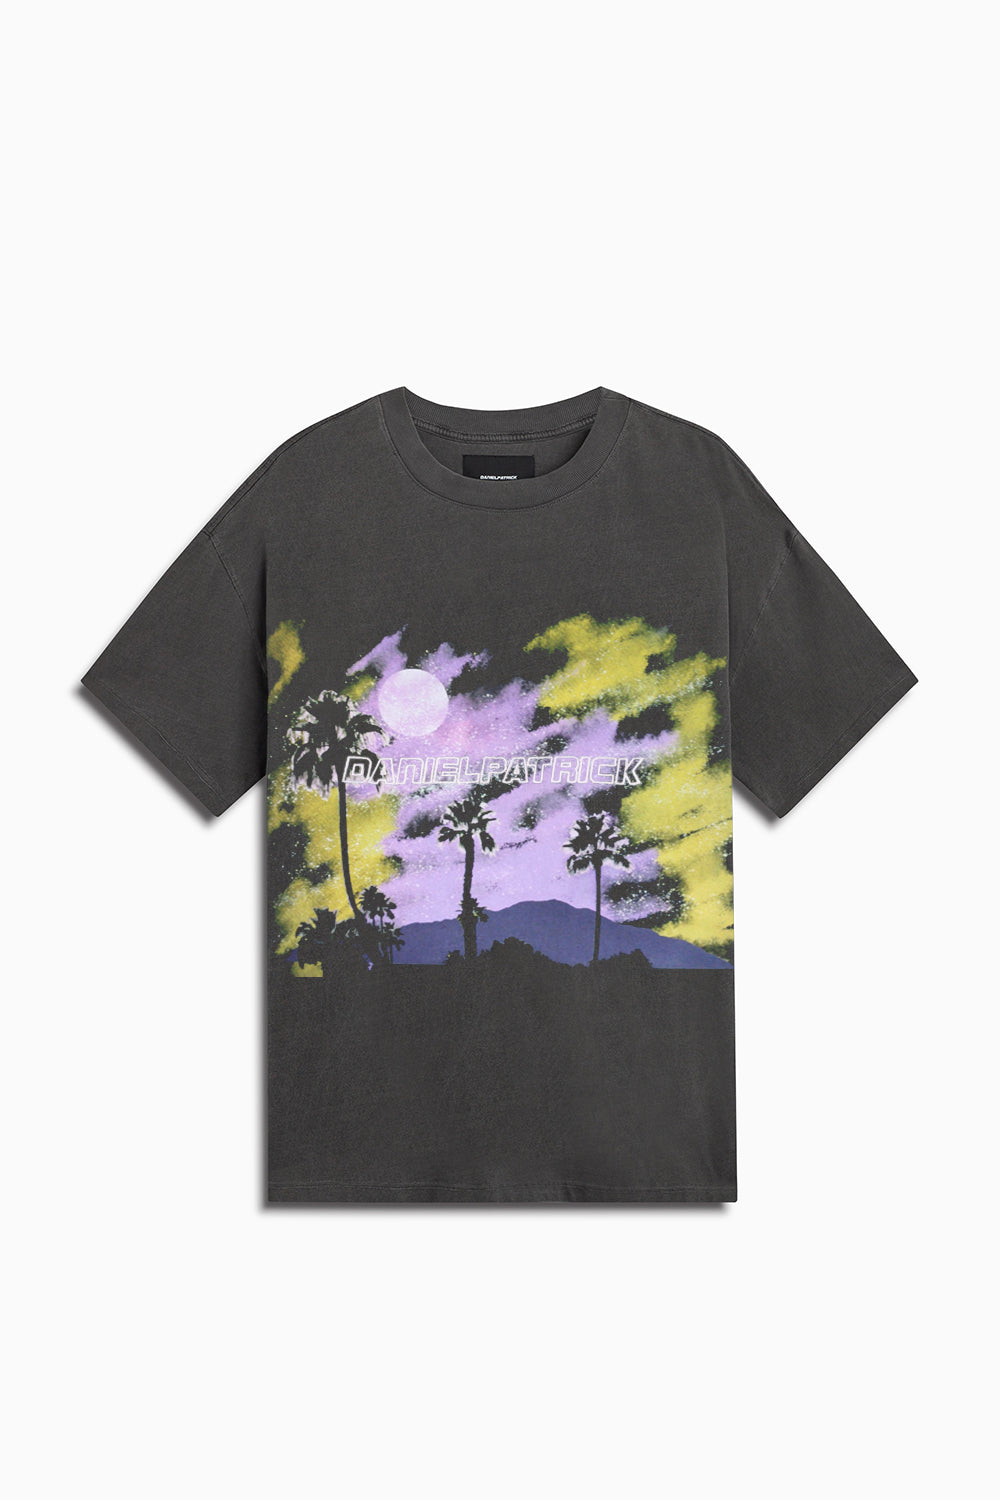 sunset tee / vintage black + purple + yellow